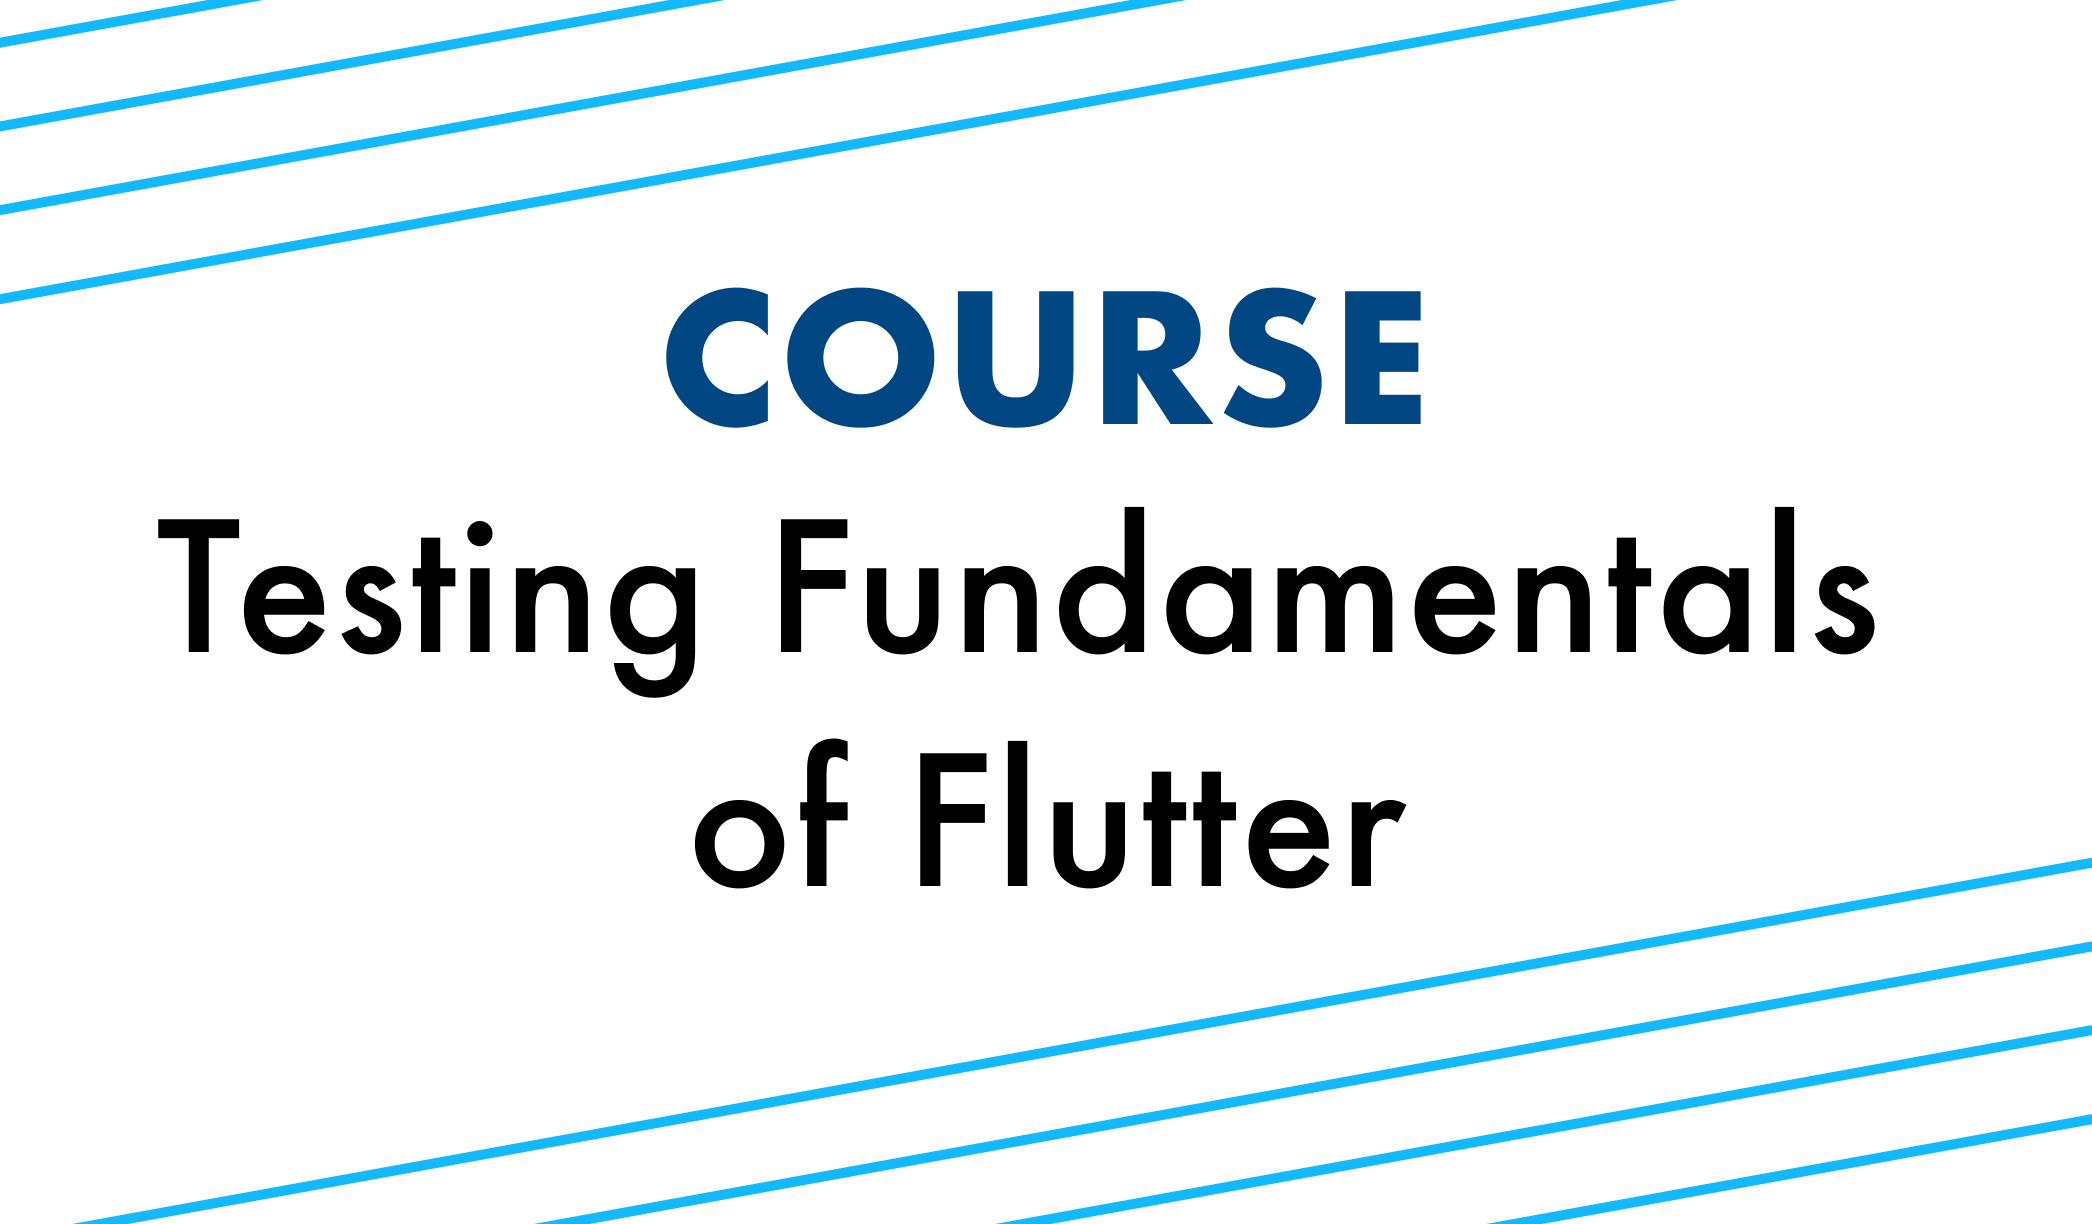 Testing Fundamentals of Flutter [Course]